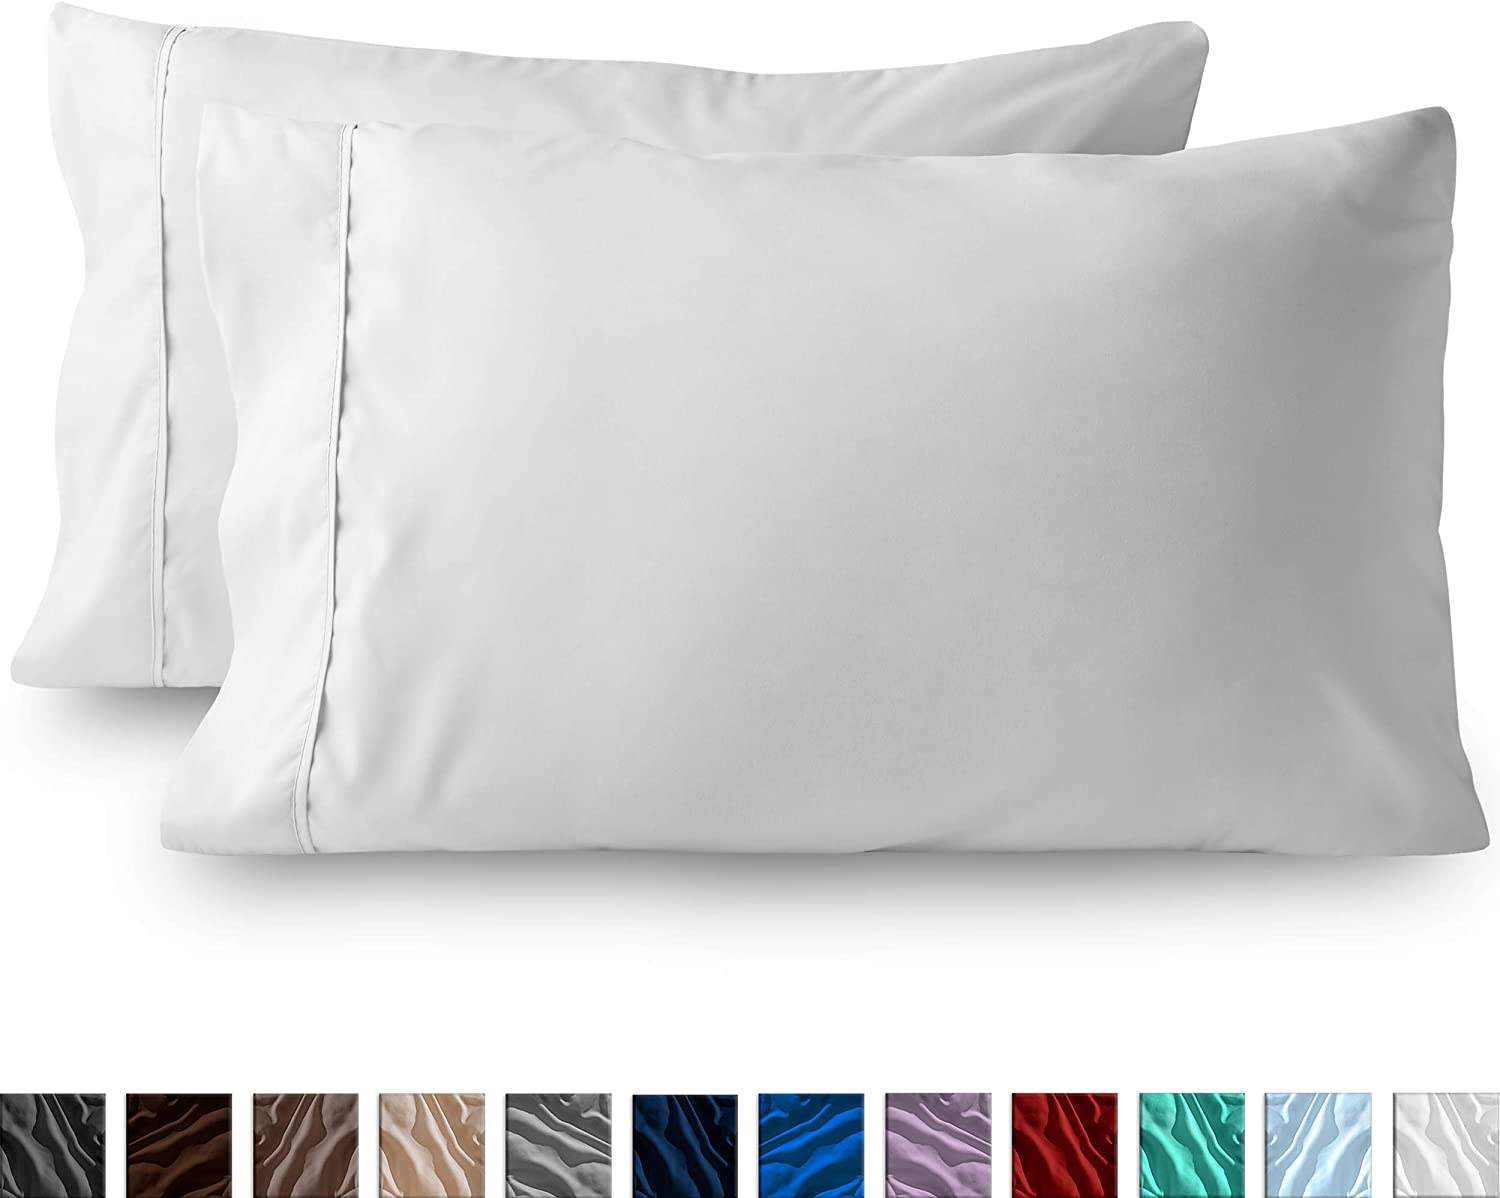 Bare Home Premium 1800 Ultra-Soft Microfiber Pillowcase Set - Double Brushed - Hypoallergenic - Wrinkle Resistant (King Pillowcase Set of 2, White)